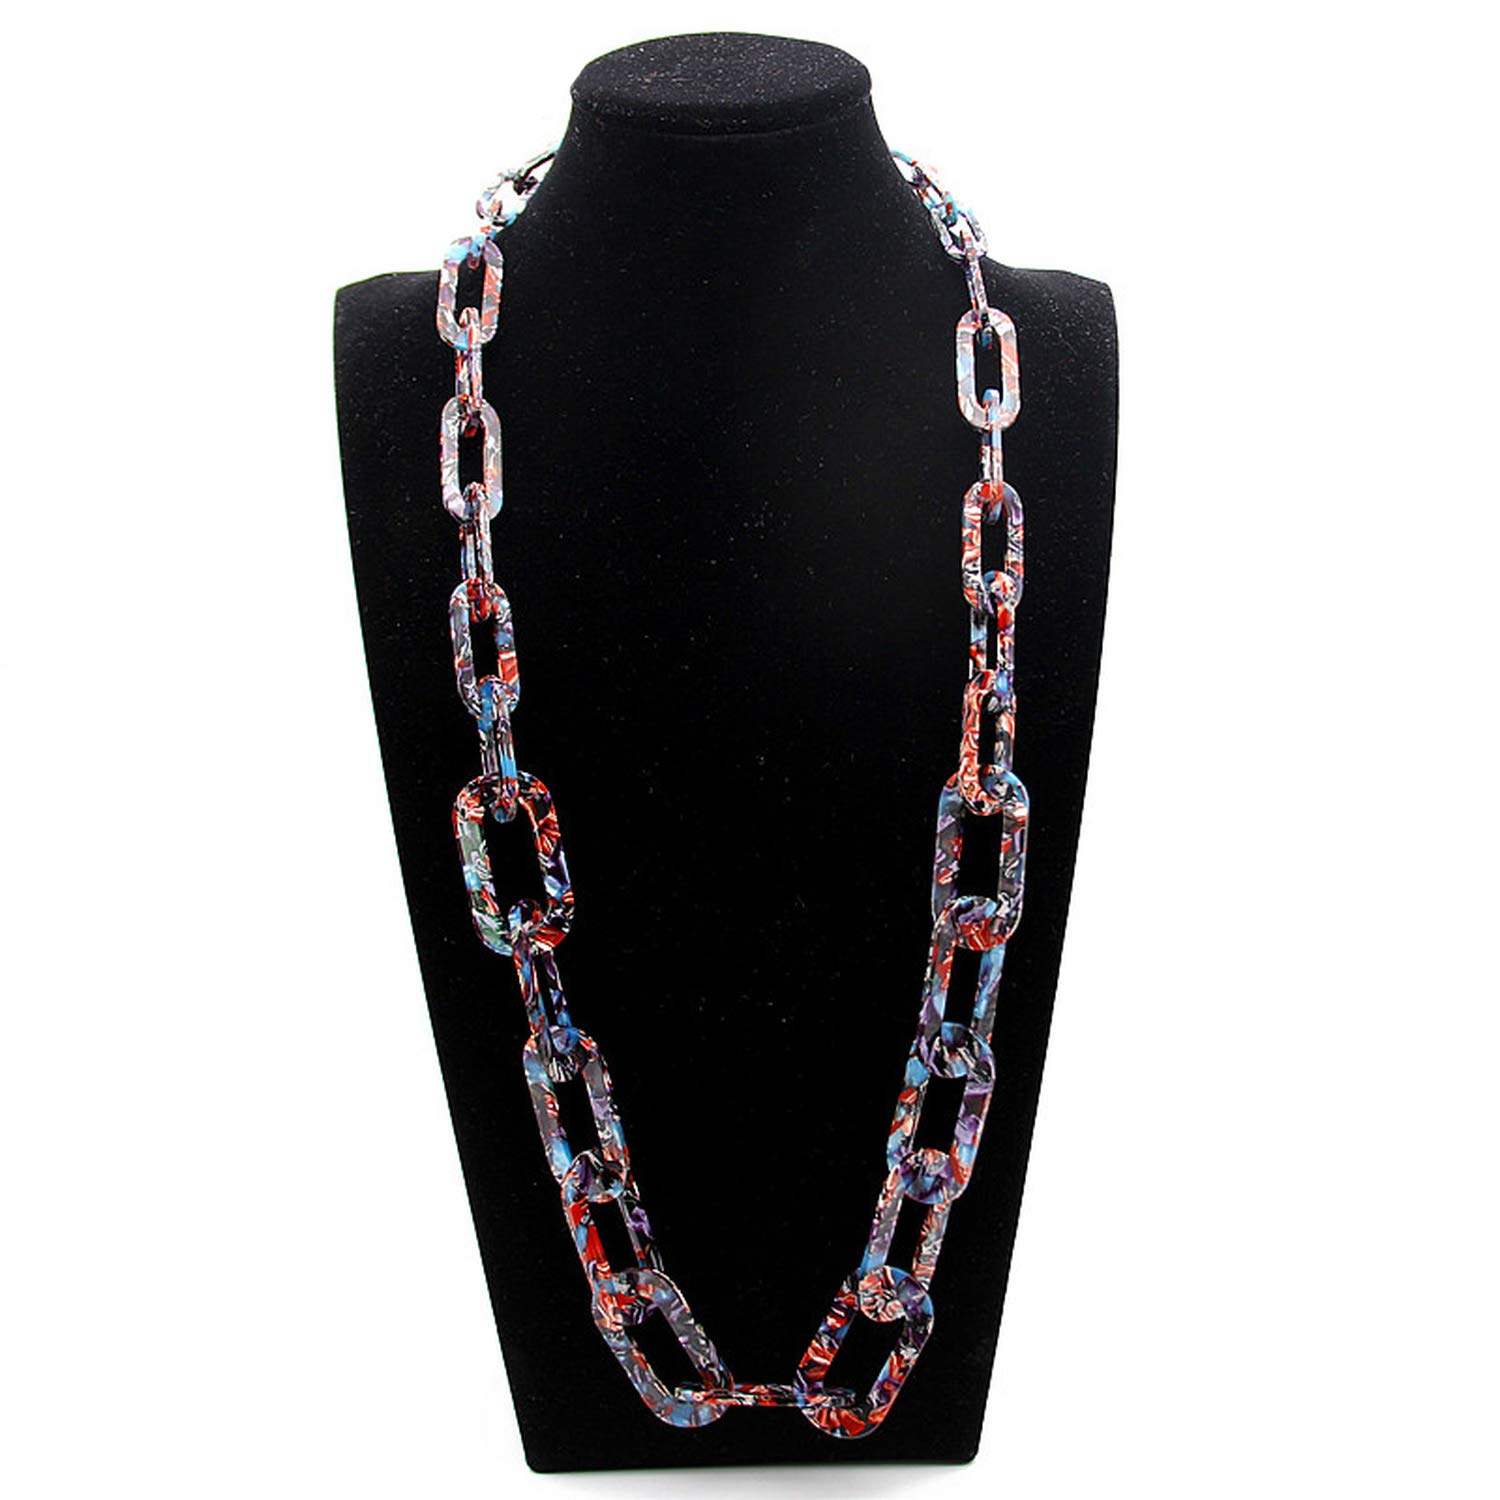 Magic Magic Shop Acid Acrylic Long Chain Necklace Bohemian Braided Link Chains Party Jewelry Gifts